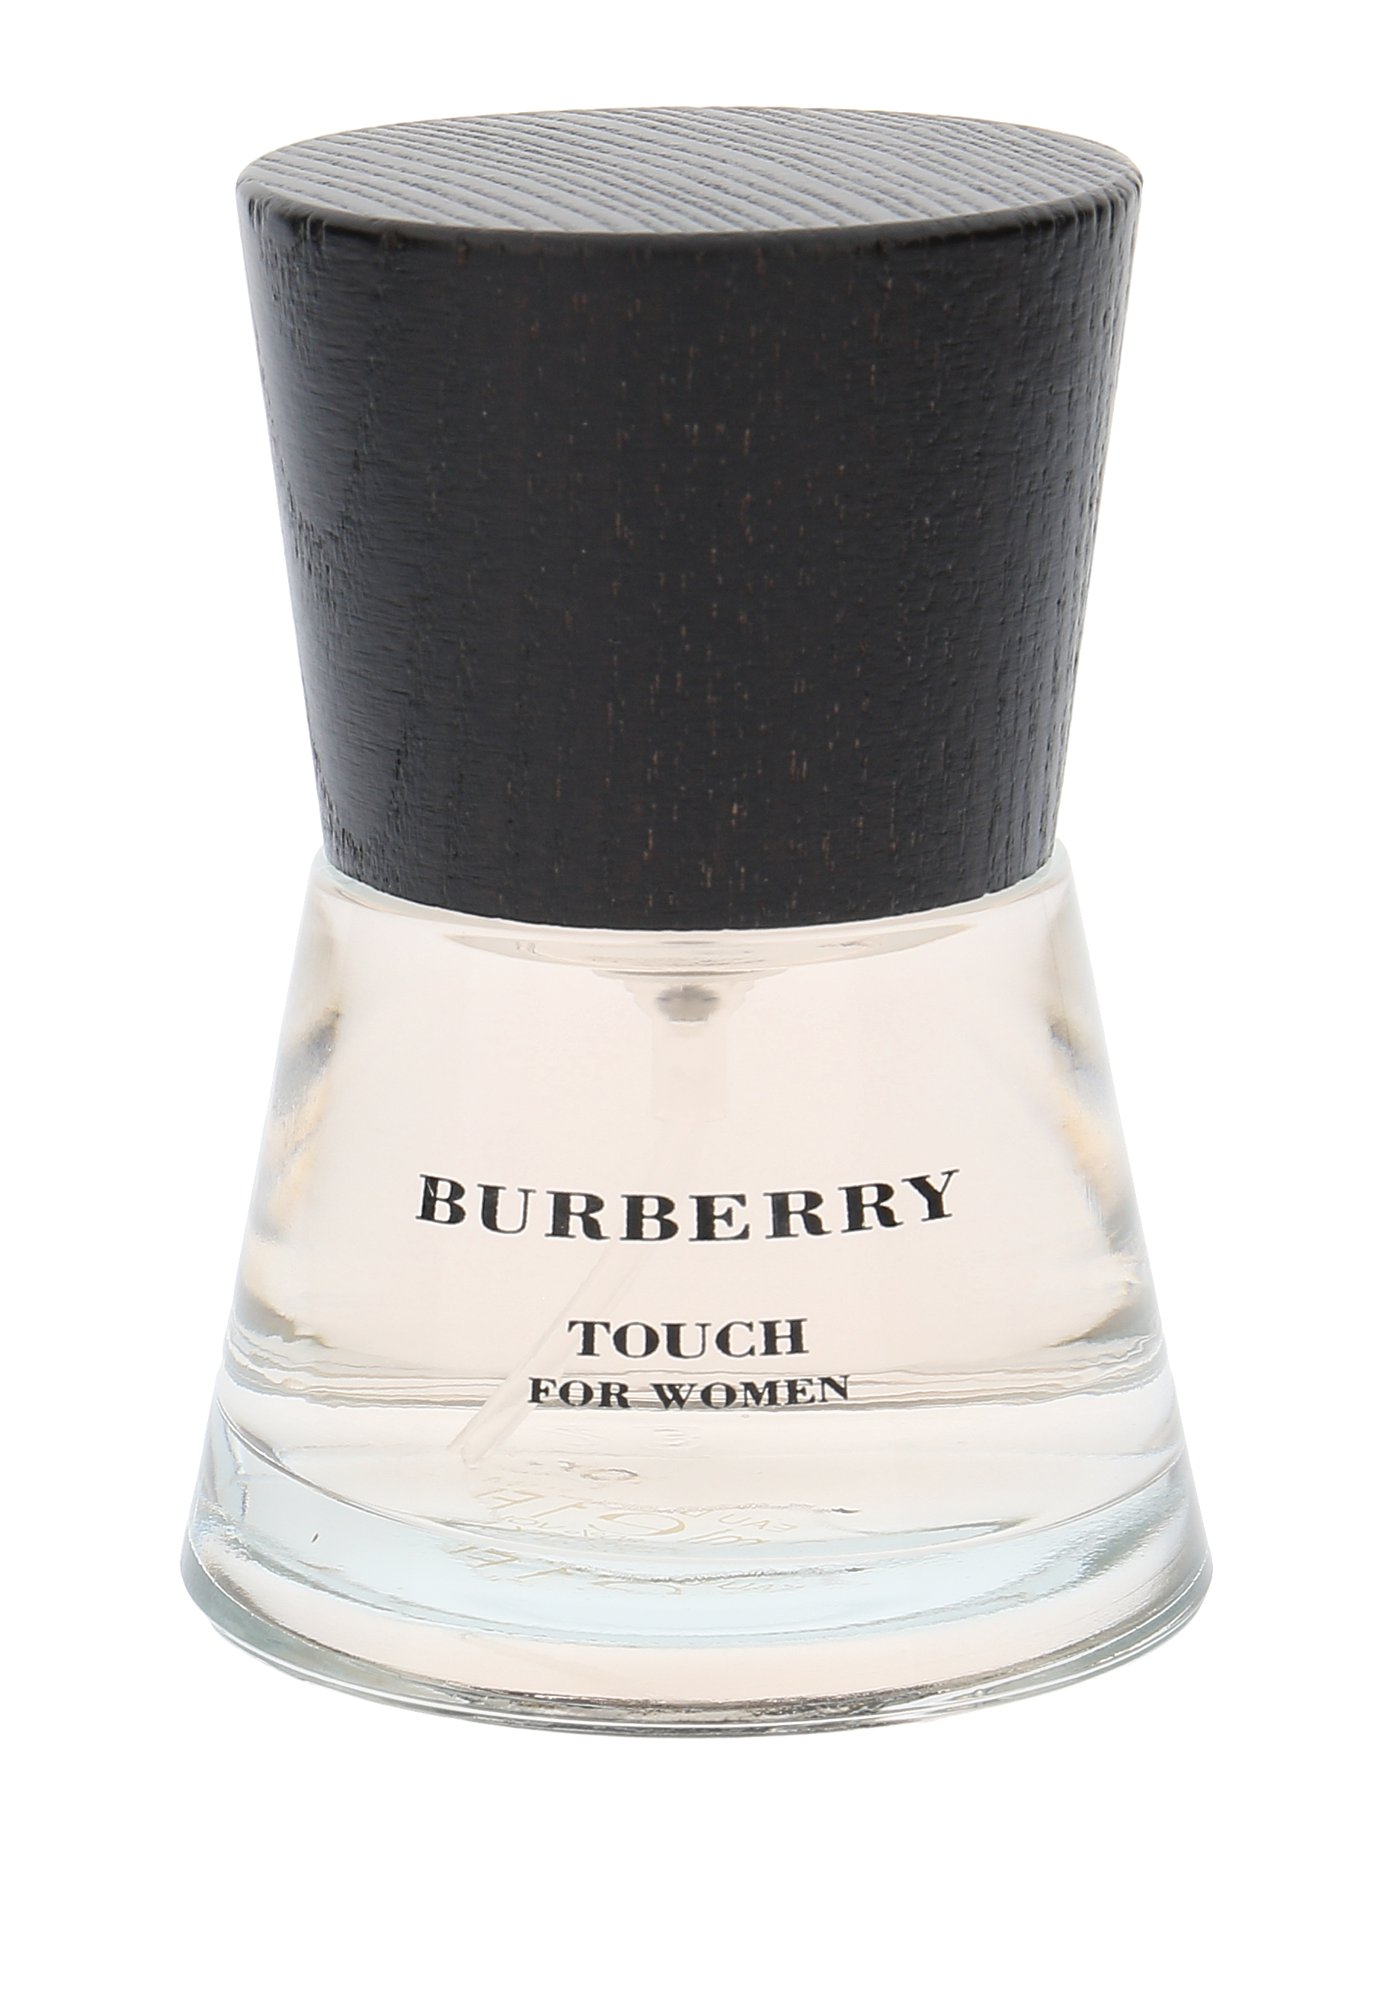 Burberry Touch For Women, edp 30ml